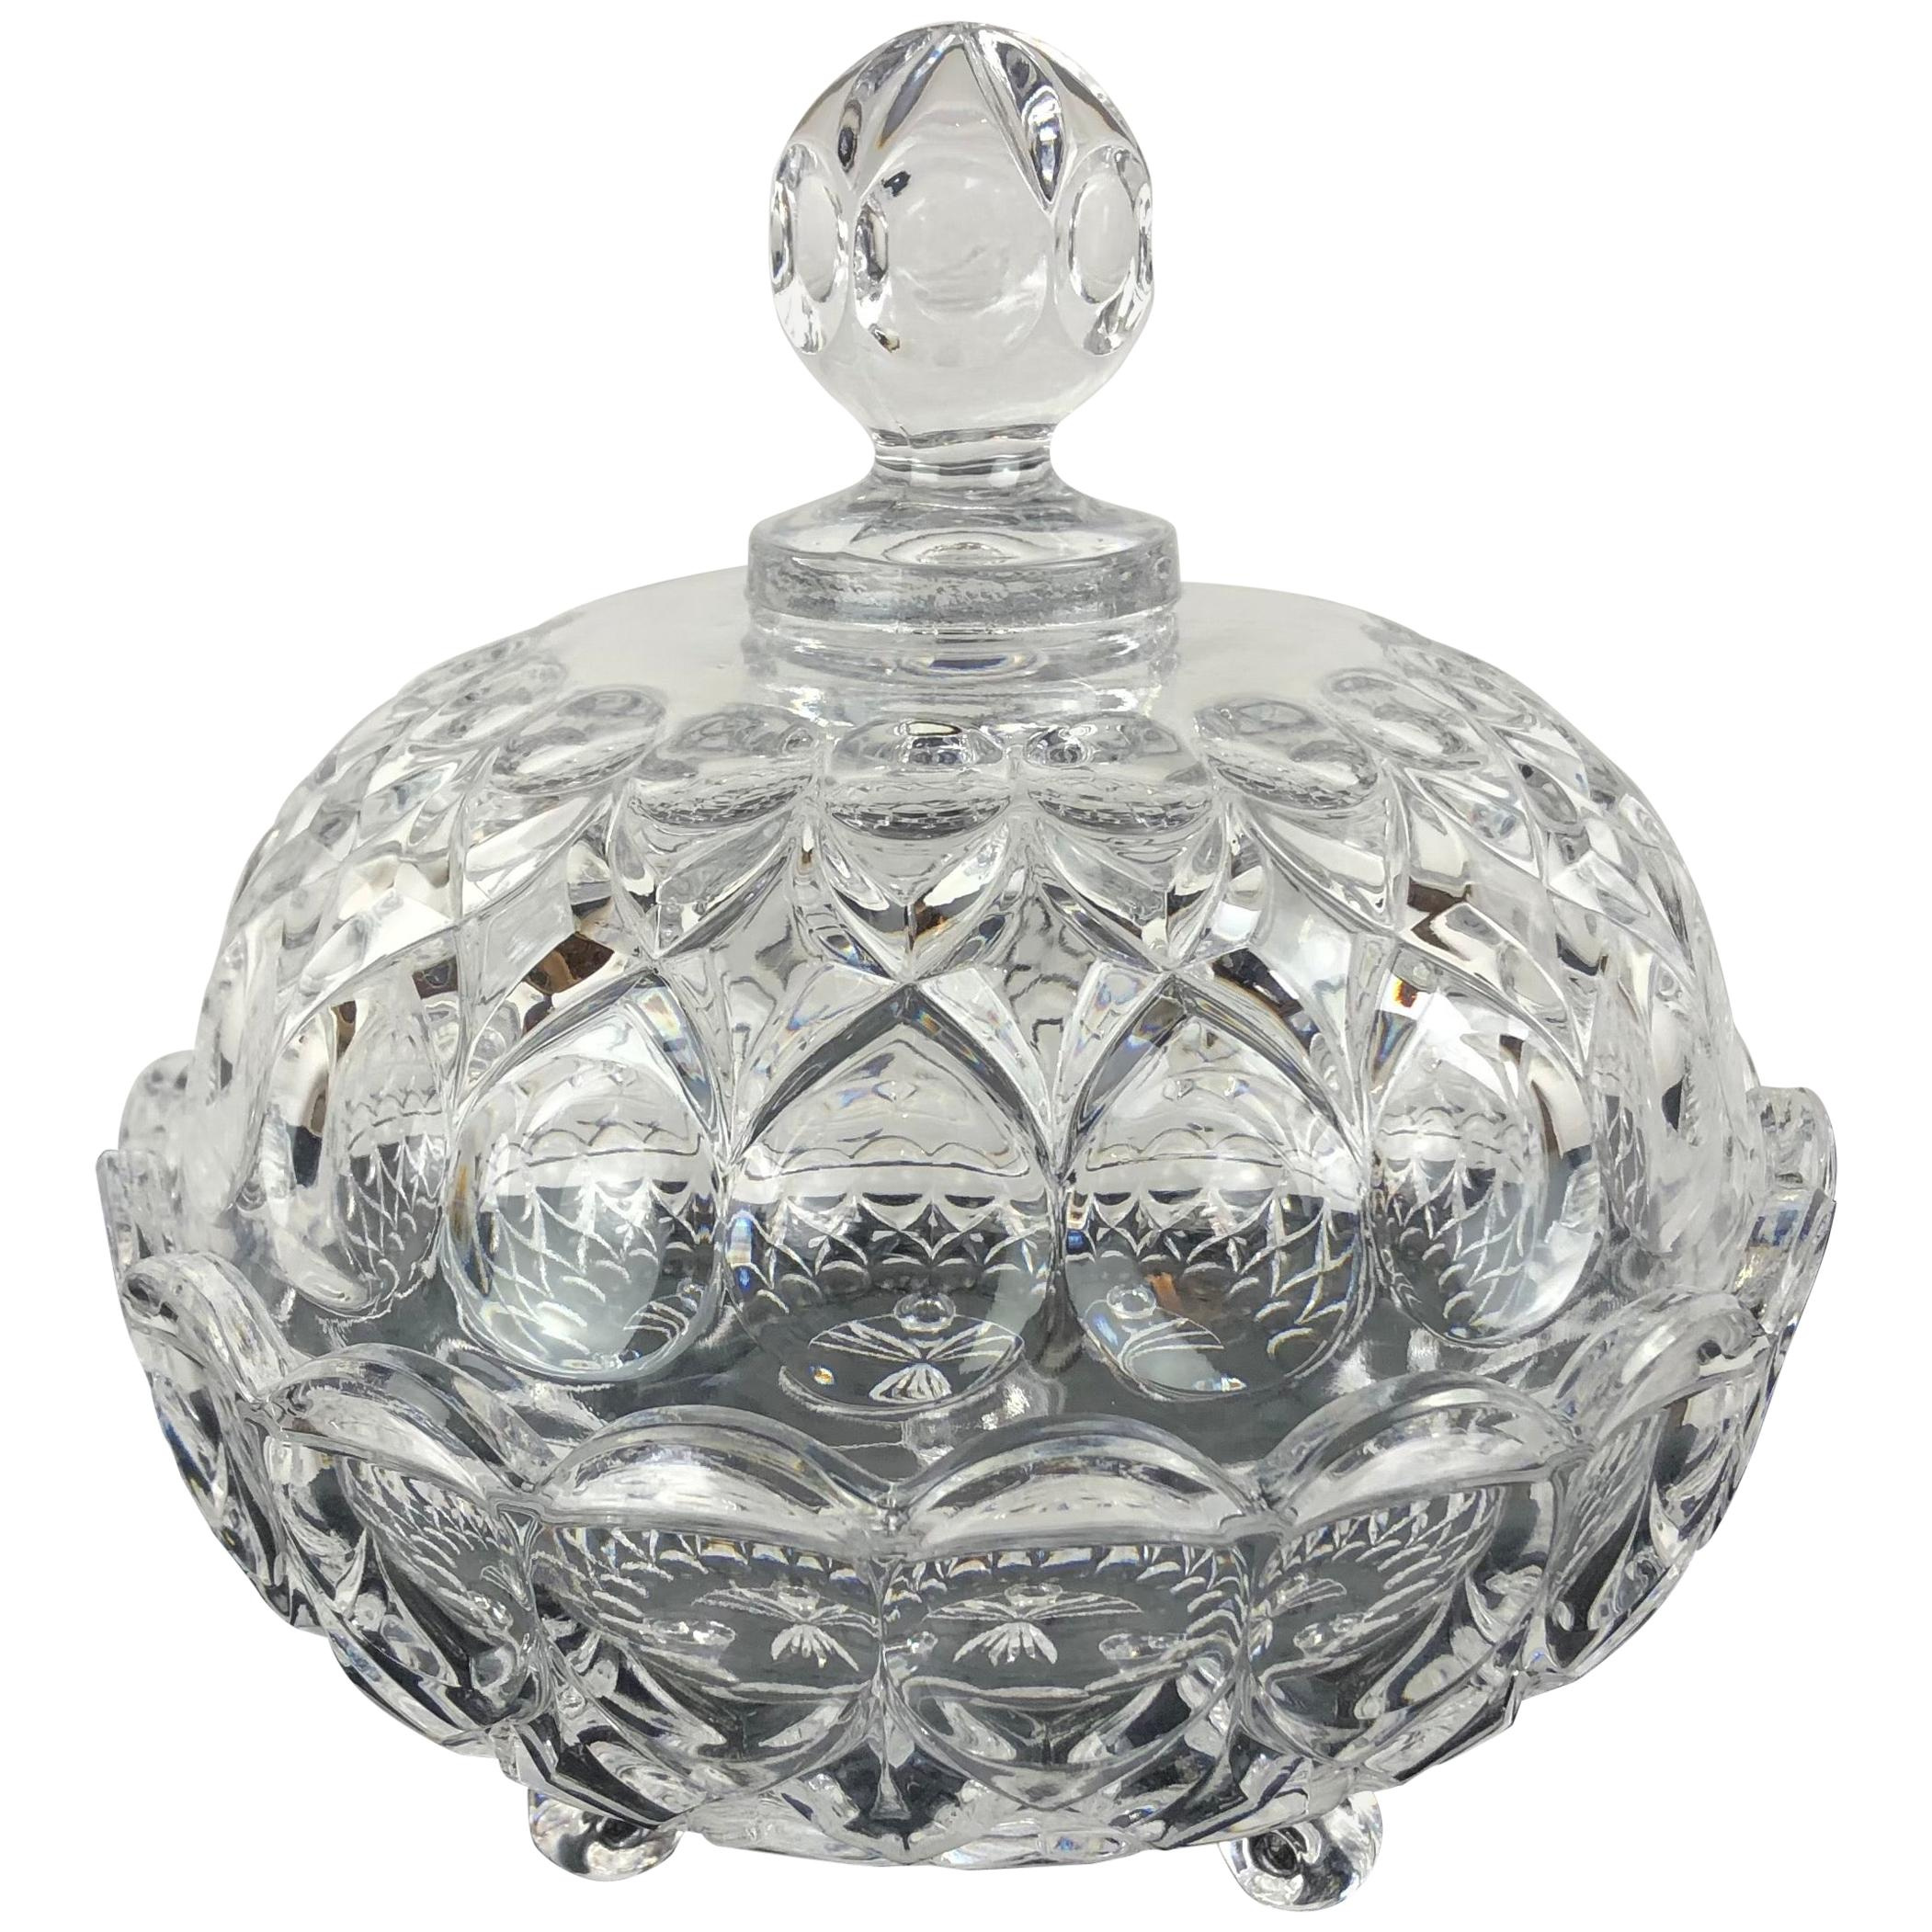 French Crystal Candy Dish, Trinket or Jewelry Box from Reims, Champagne Region